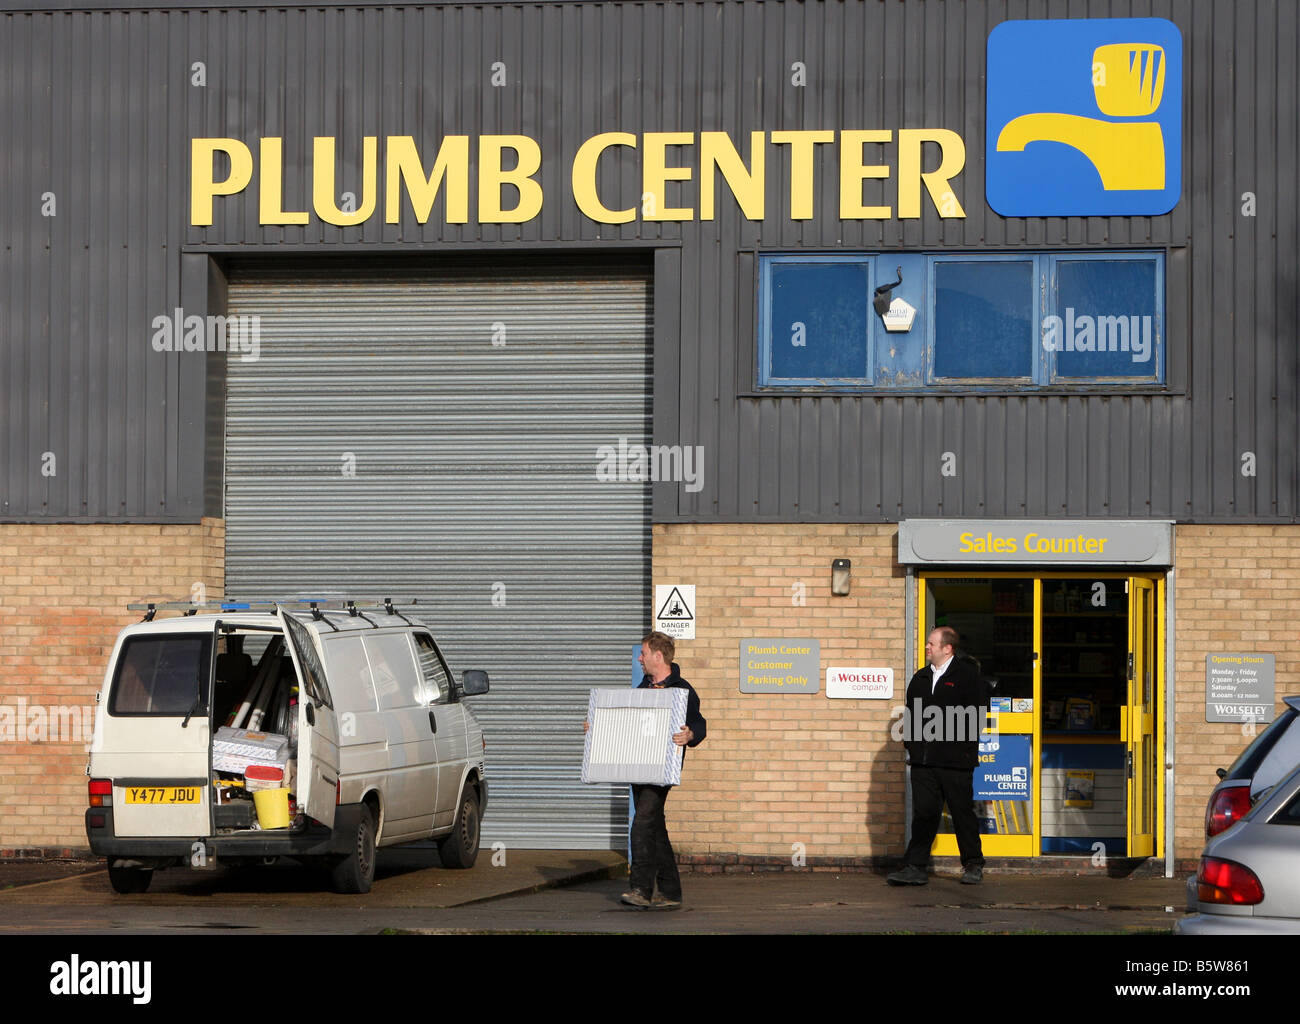 The Plumb Center, a Plumbing and building materials firm owned by Wolseley PLC Stock Photo